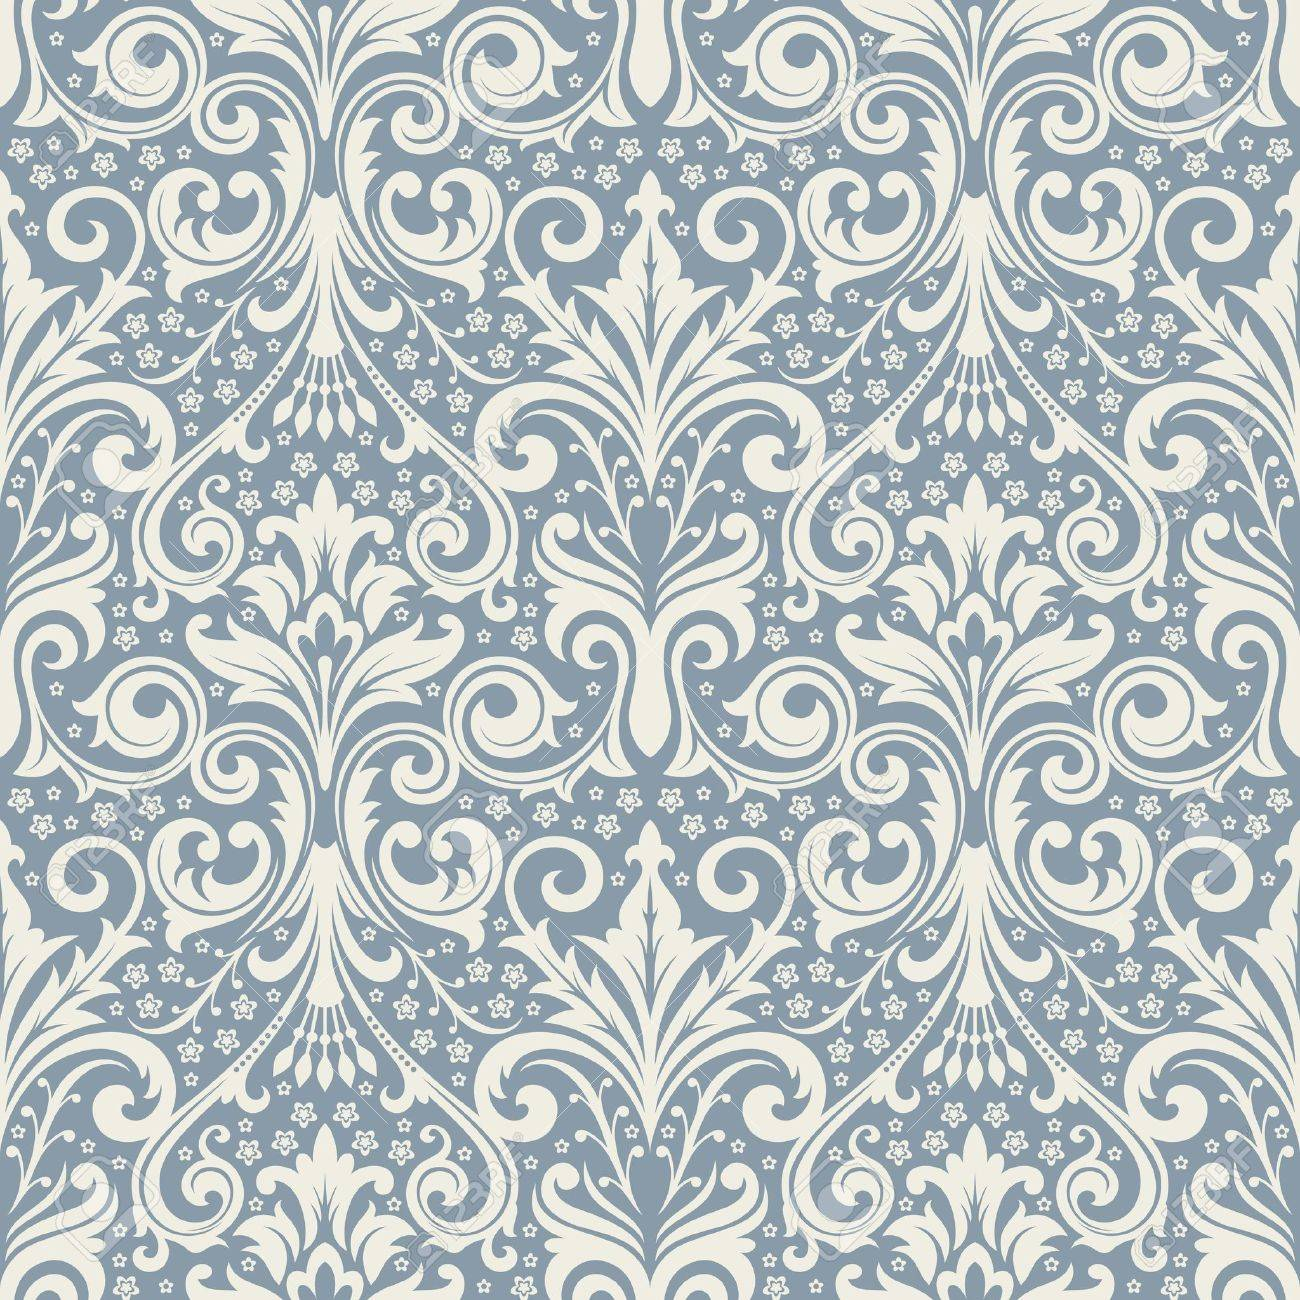 Seamless Background From A Floral Ornament Fashionable Modern